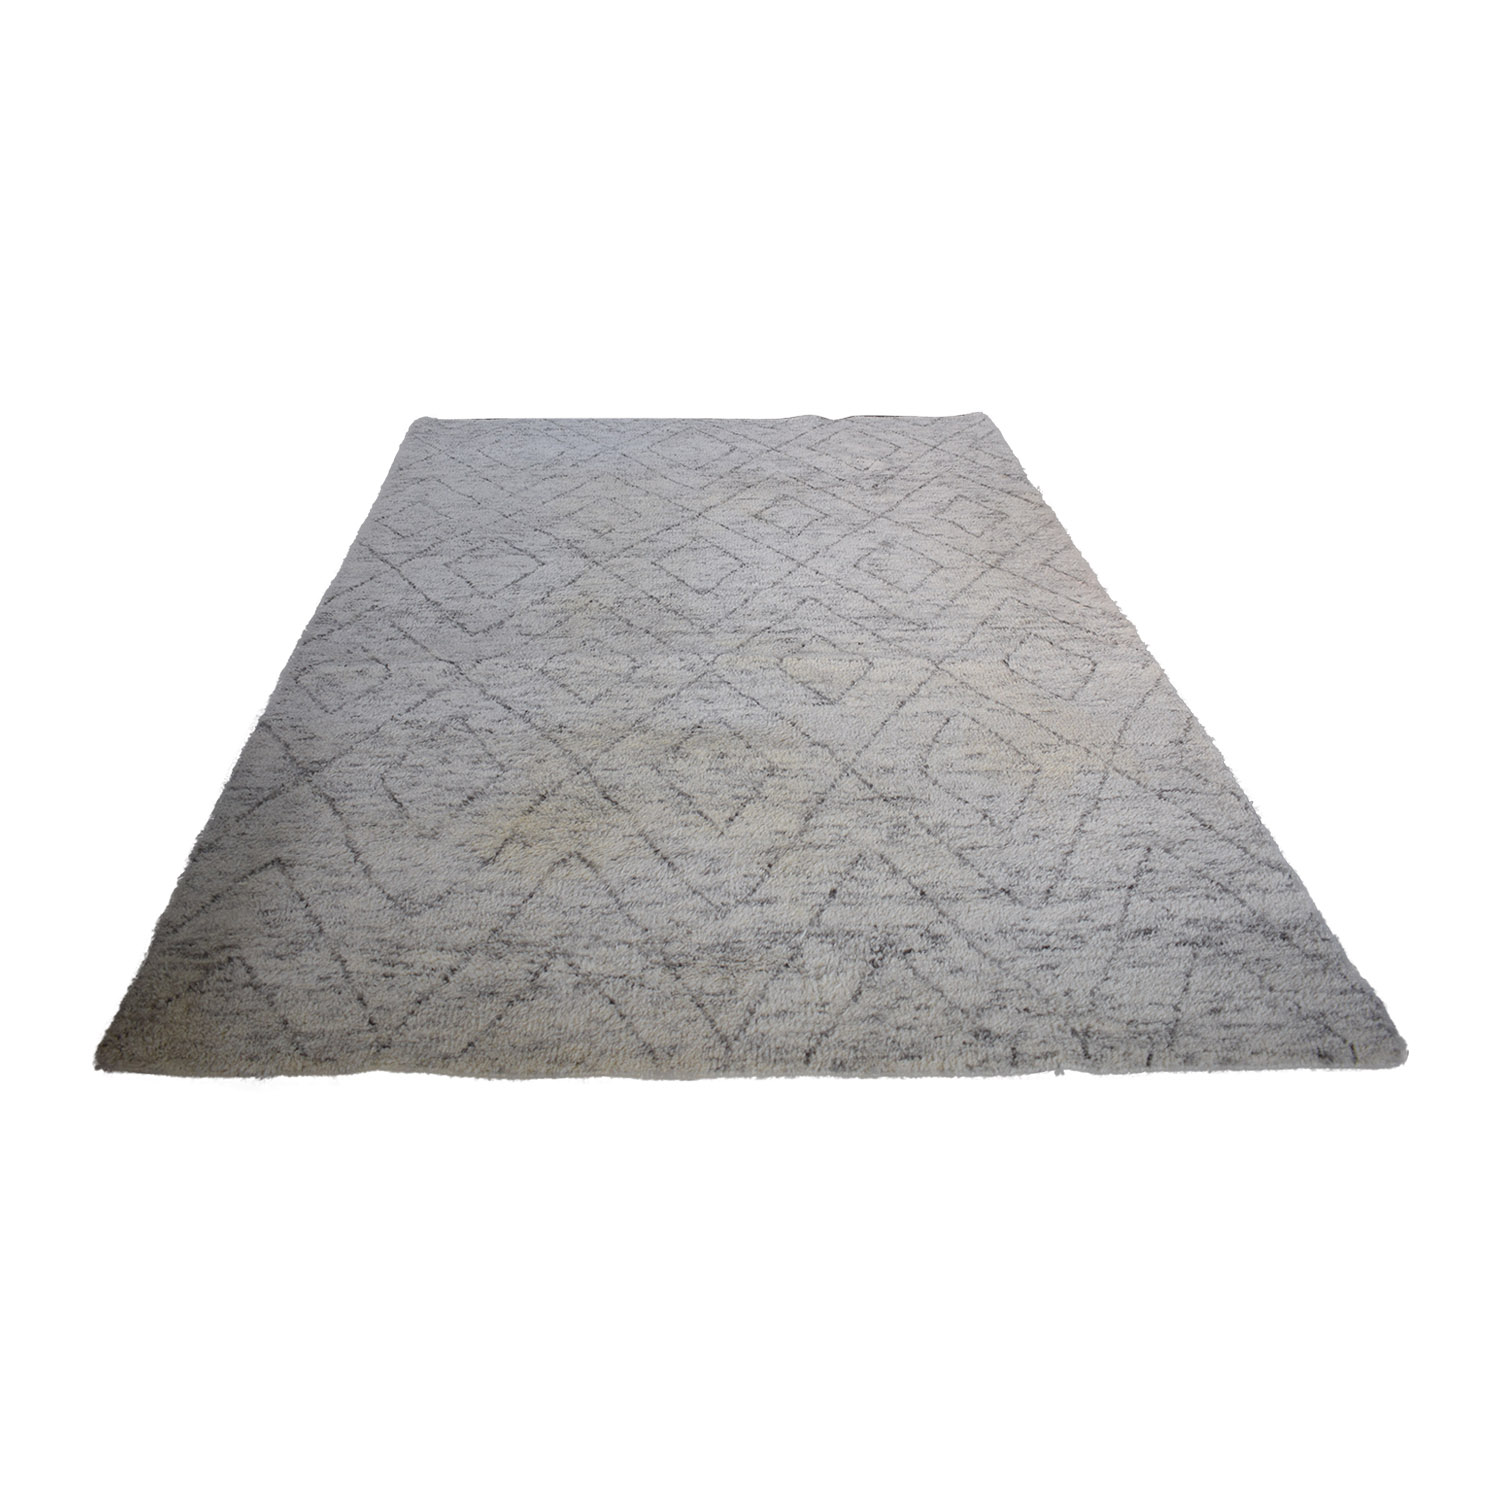 Restoration Hardware Double Diamond Moroccan Wool Rug / Rugs